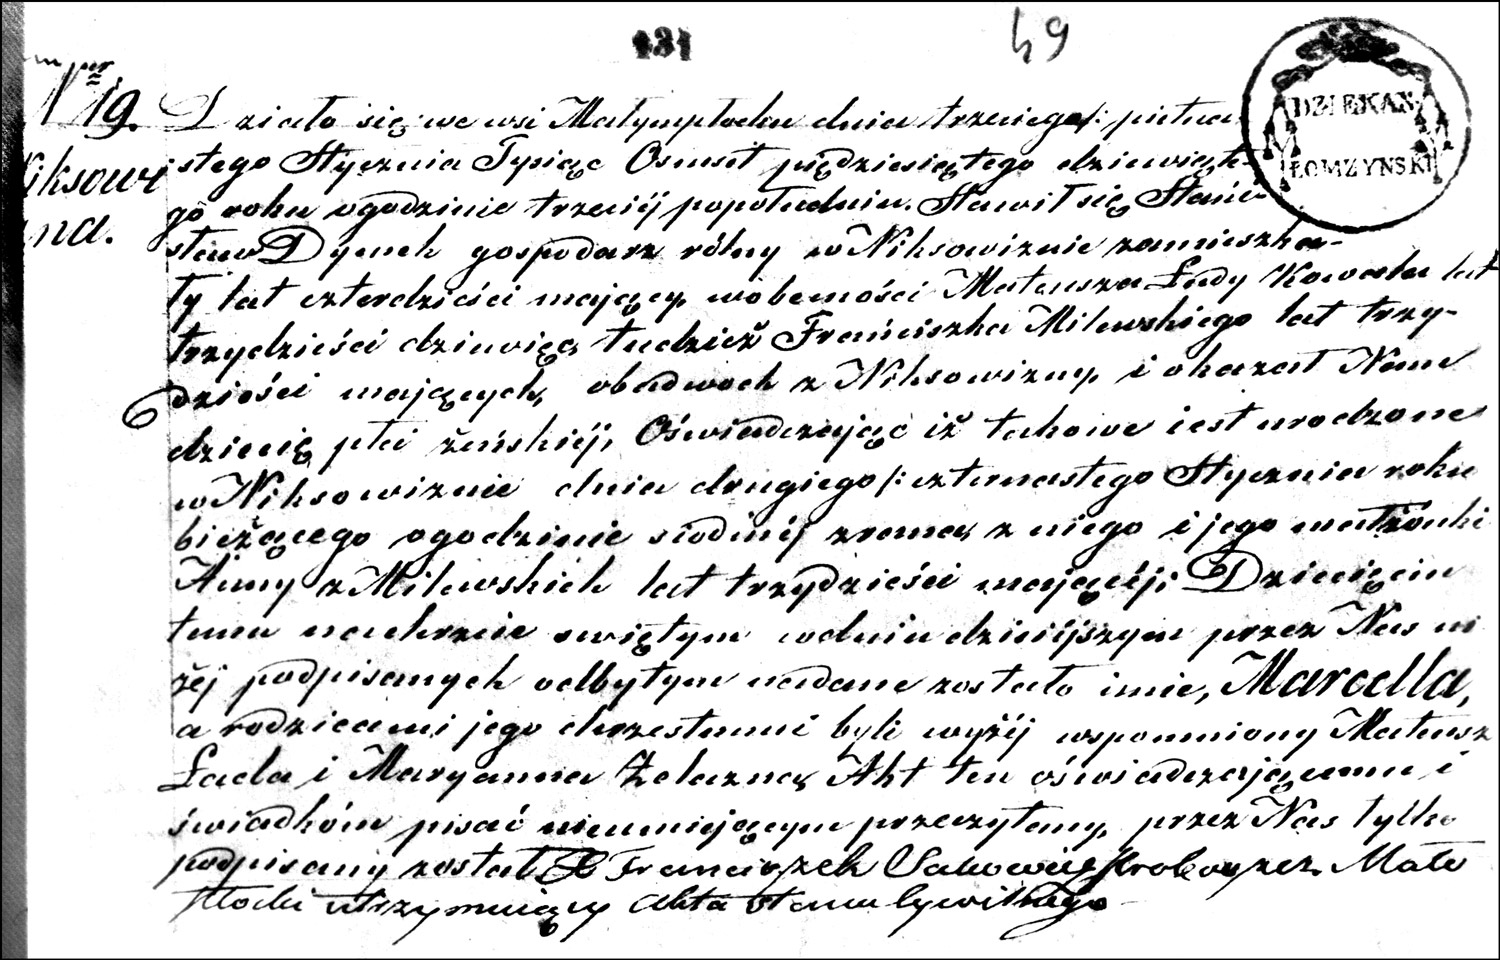 The Birth and Baptismal Record of Marcella Dymek – 1859